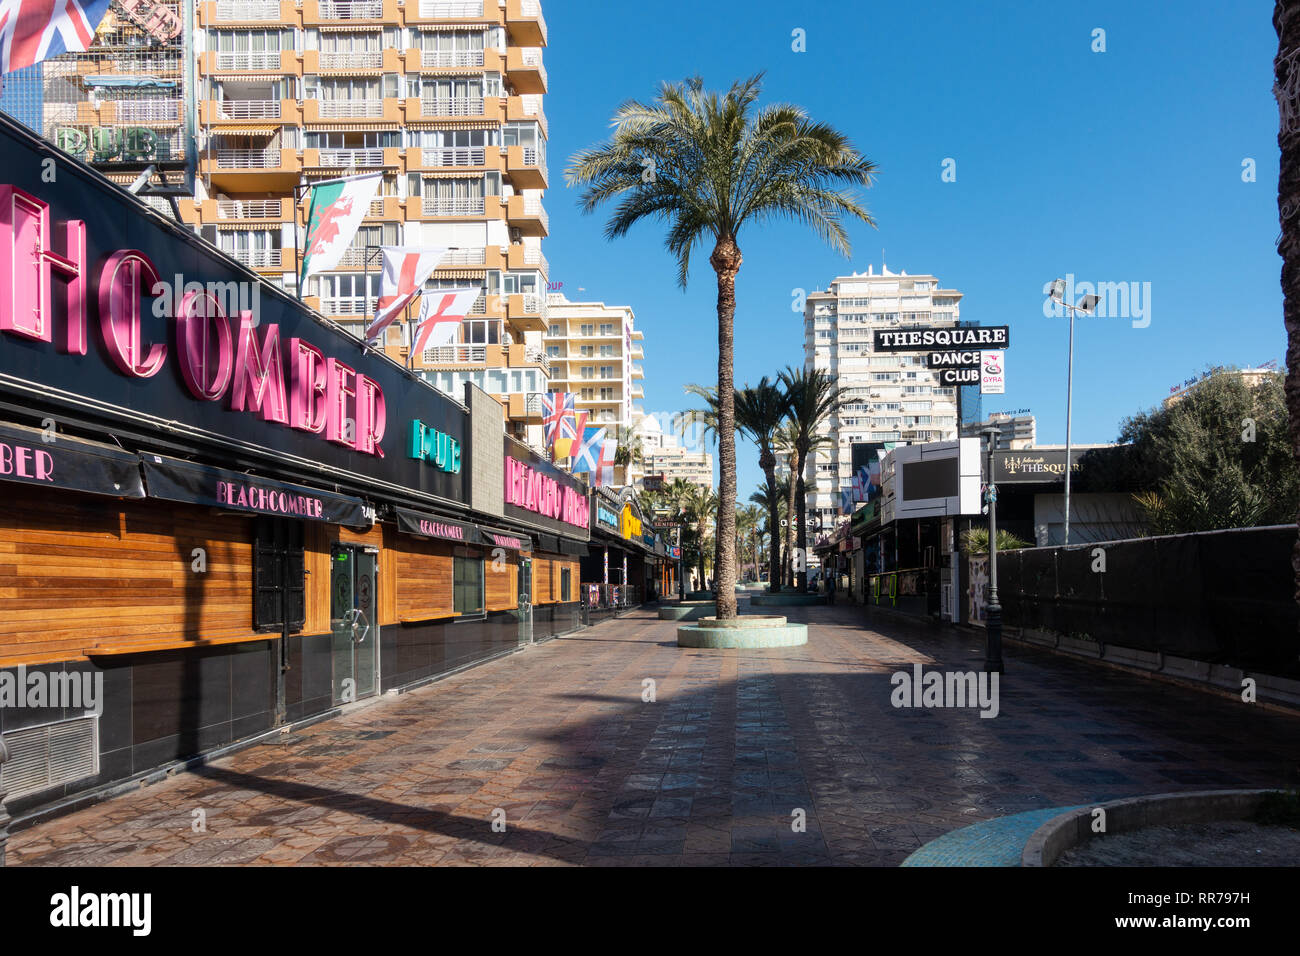 Benidorm, Costa Blanca, Spain, 25th February 2019. Two staff members at the Beachcomber pub in Benidorm New Town on the British square. Two British tourists have been arrested in relation to the alleged attack. Credit: Mick Flynn/Alamy Live News Stock Photo